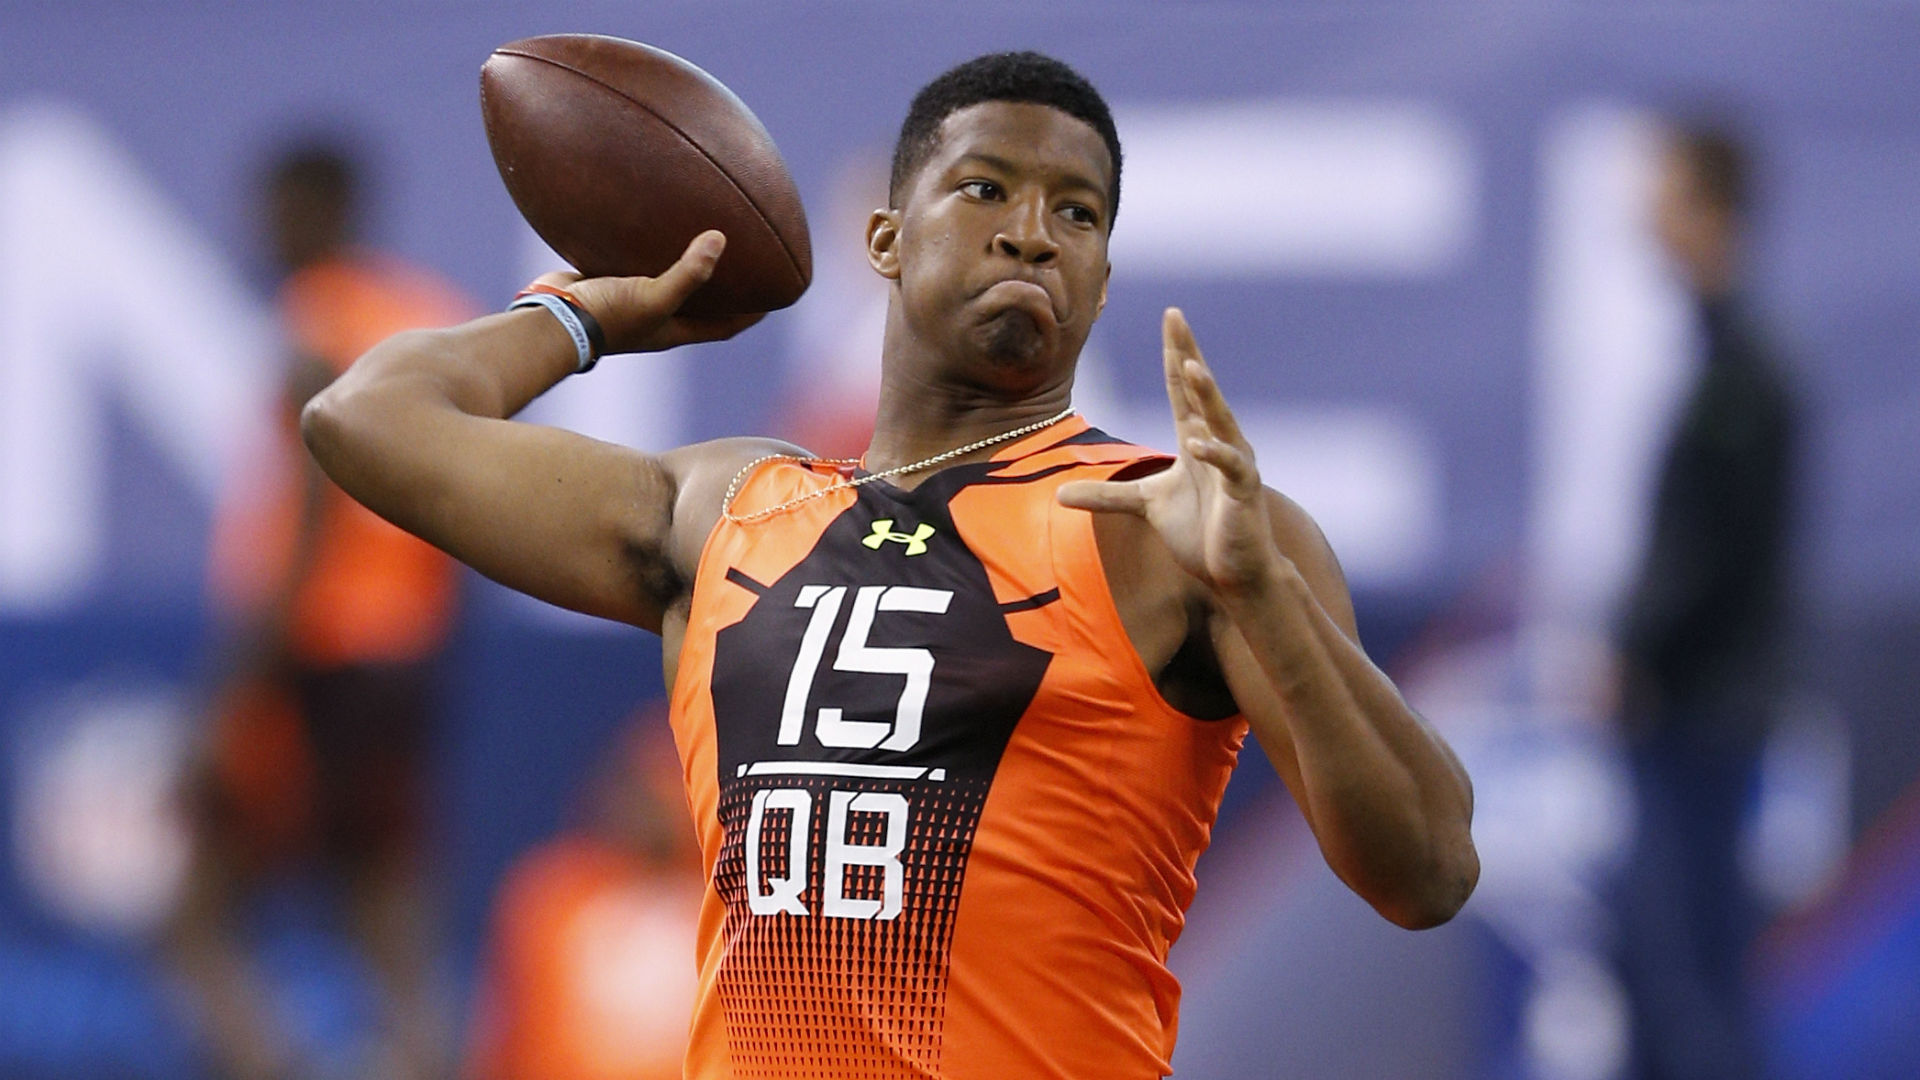 Jameis Winston says he's the 'best player in the draft'